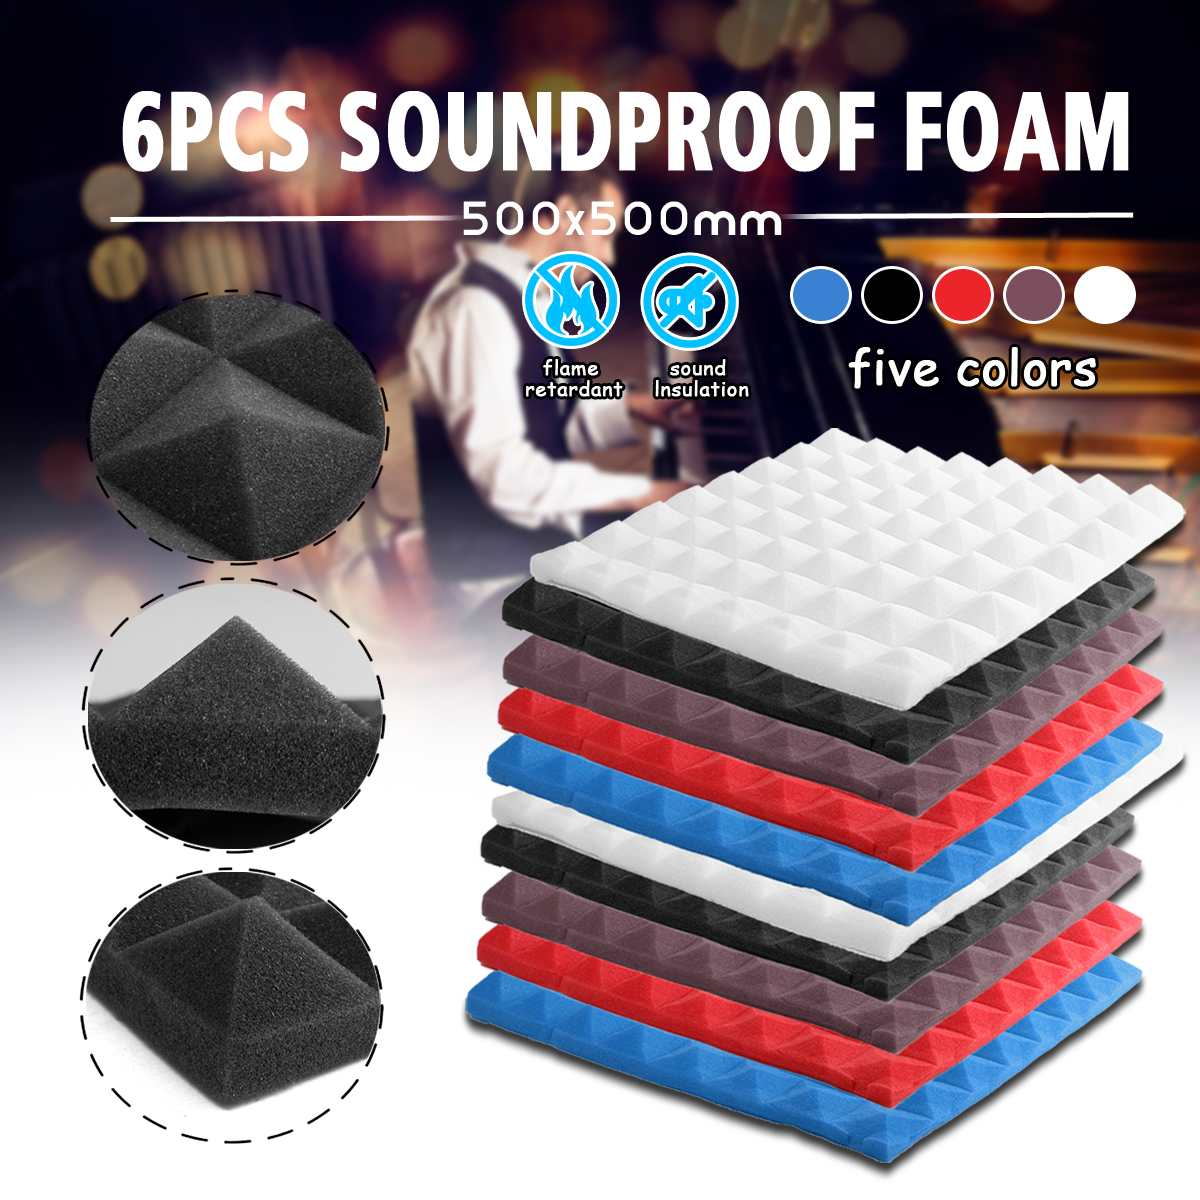 6PCS 500x500mm Soundproofing Foam Acoustic Foam Sound Treatment Studio Room Absorption Wedge Tiles Polyurethane Foam